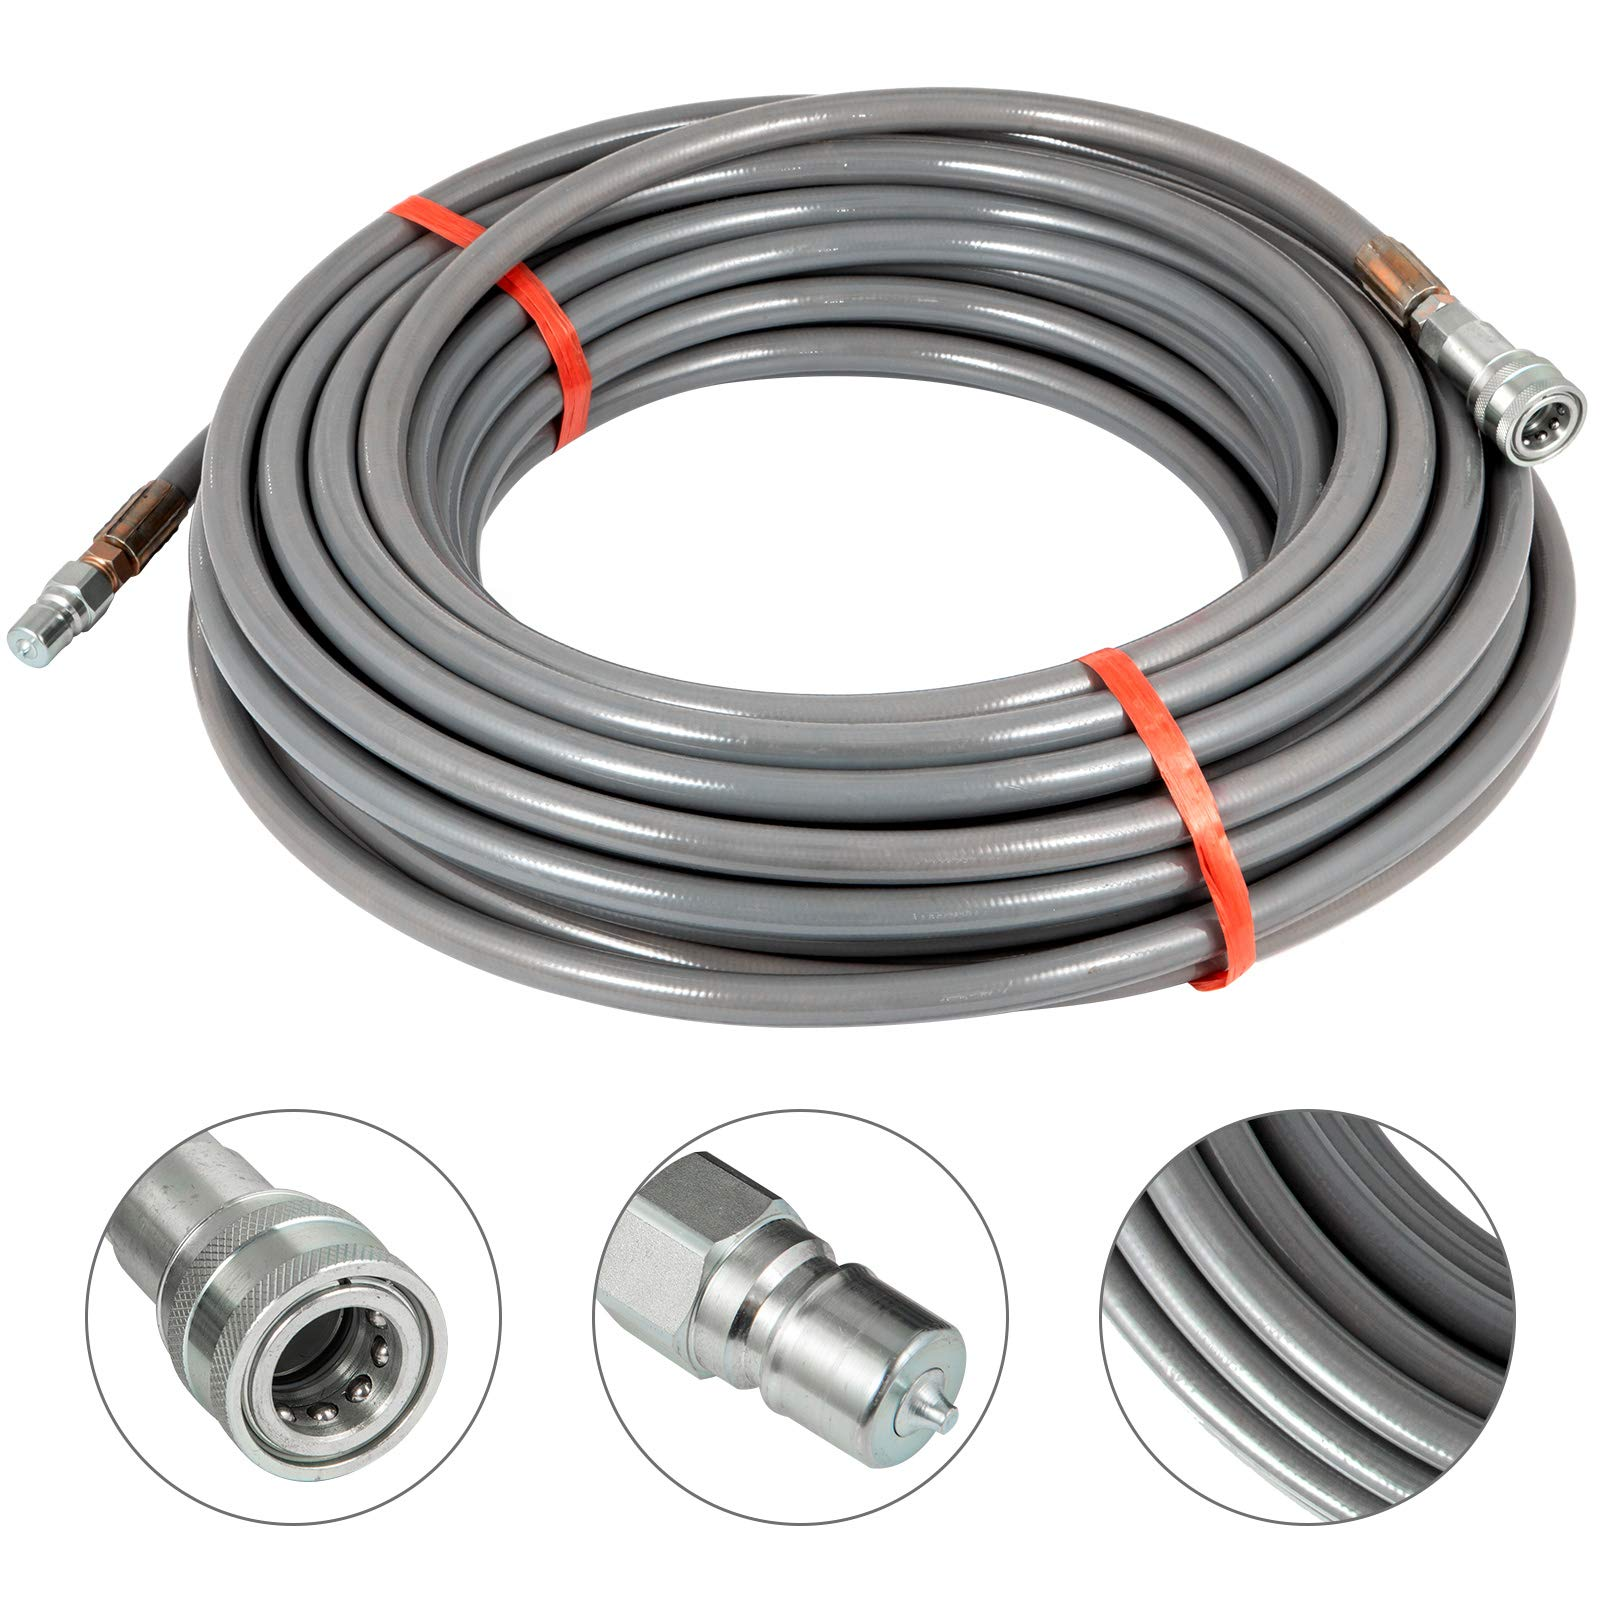 Happybuy 3/8 Inch Pressure Washer Hose 150Ft Power Washer Hose 4500 PSI Carpet Cleaning Hose for Cold Water Replacement Extension Hose